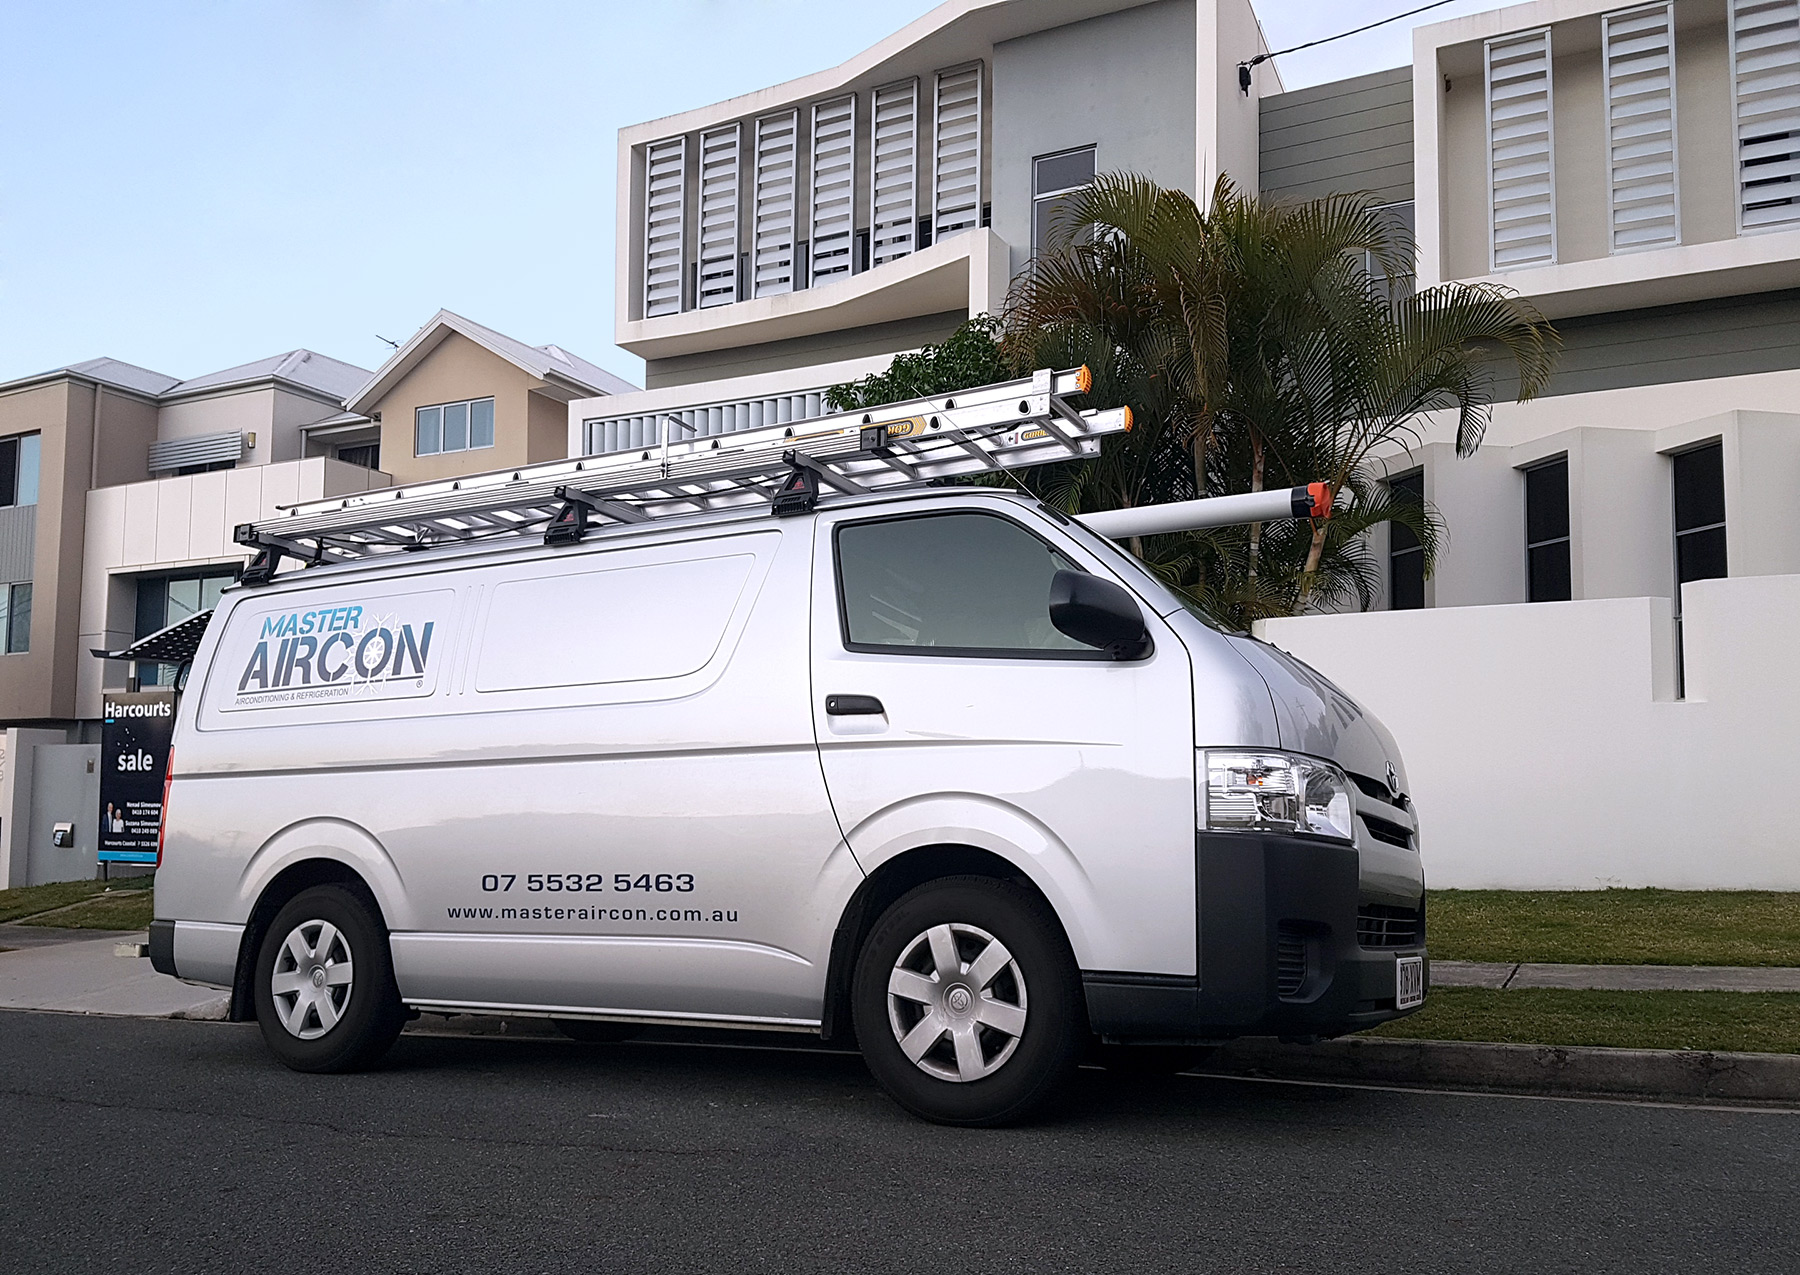 https://www.masteraircon.com.au/wp-content/uploads/2018/07/van_2_july18.jpg